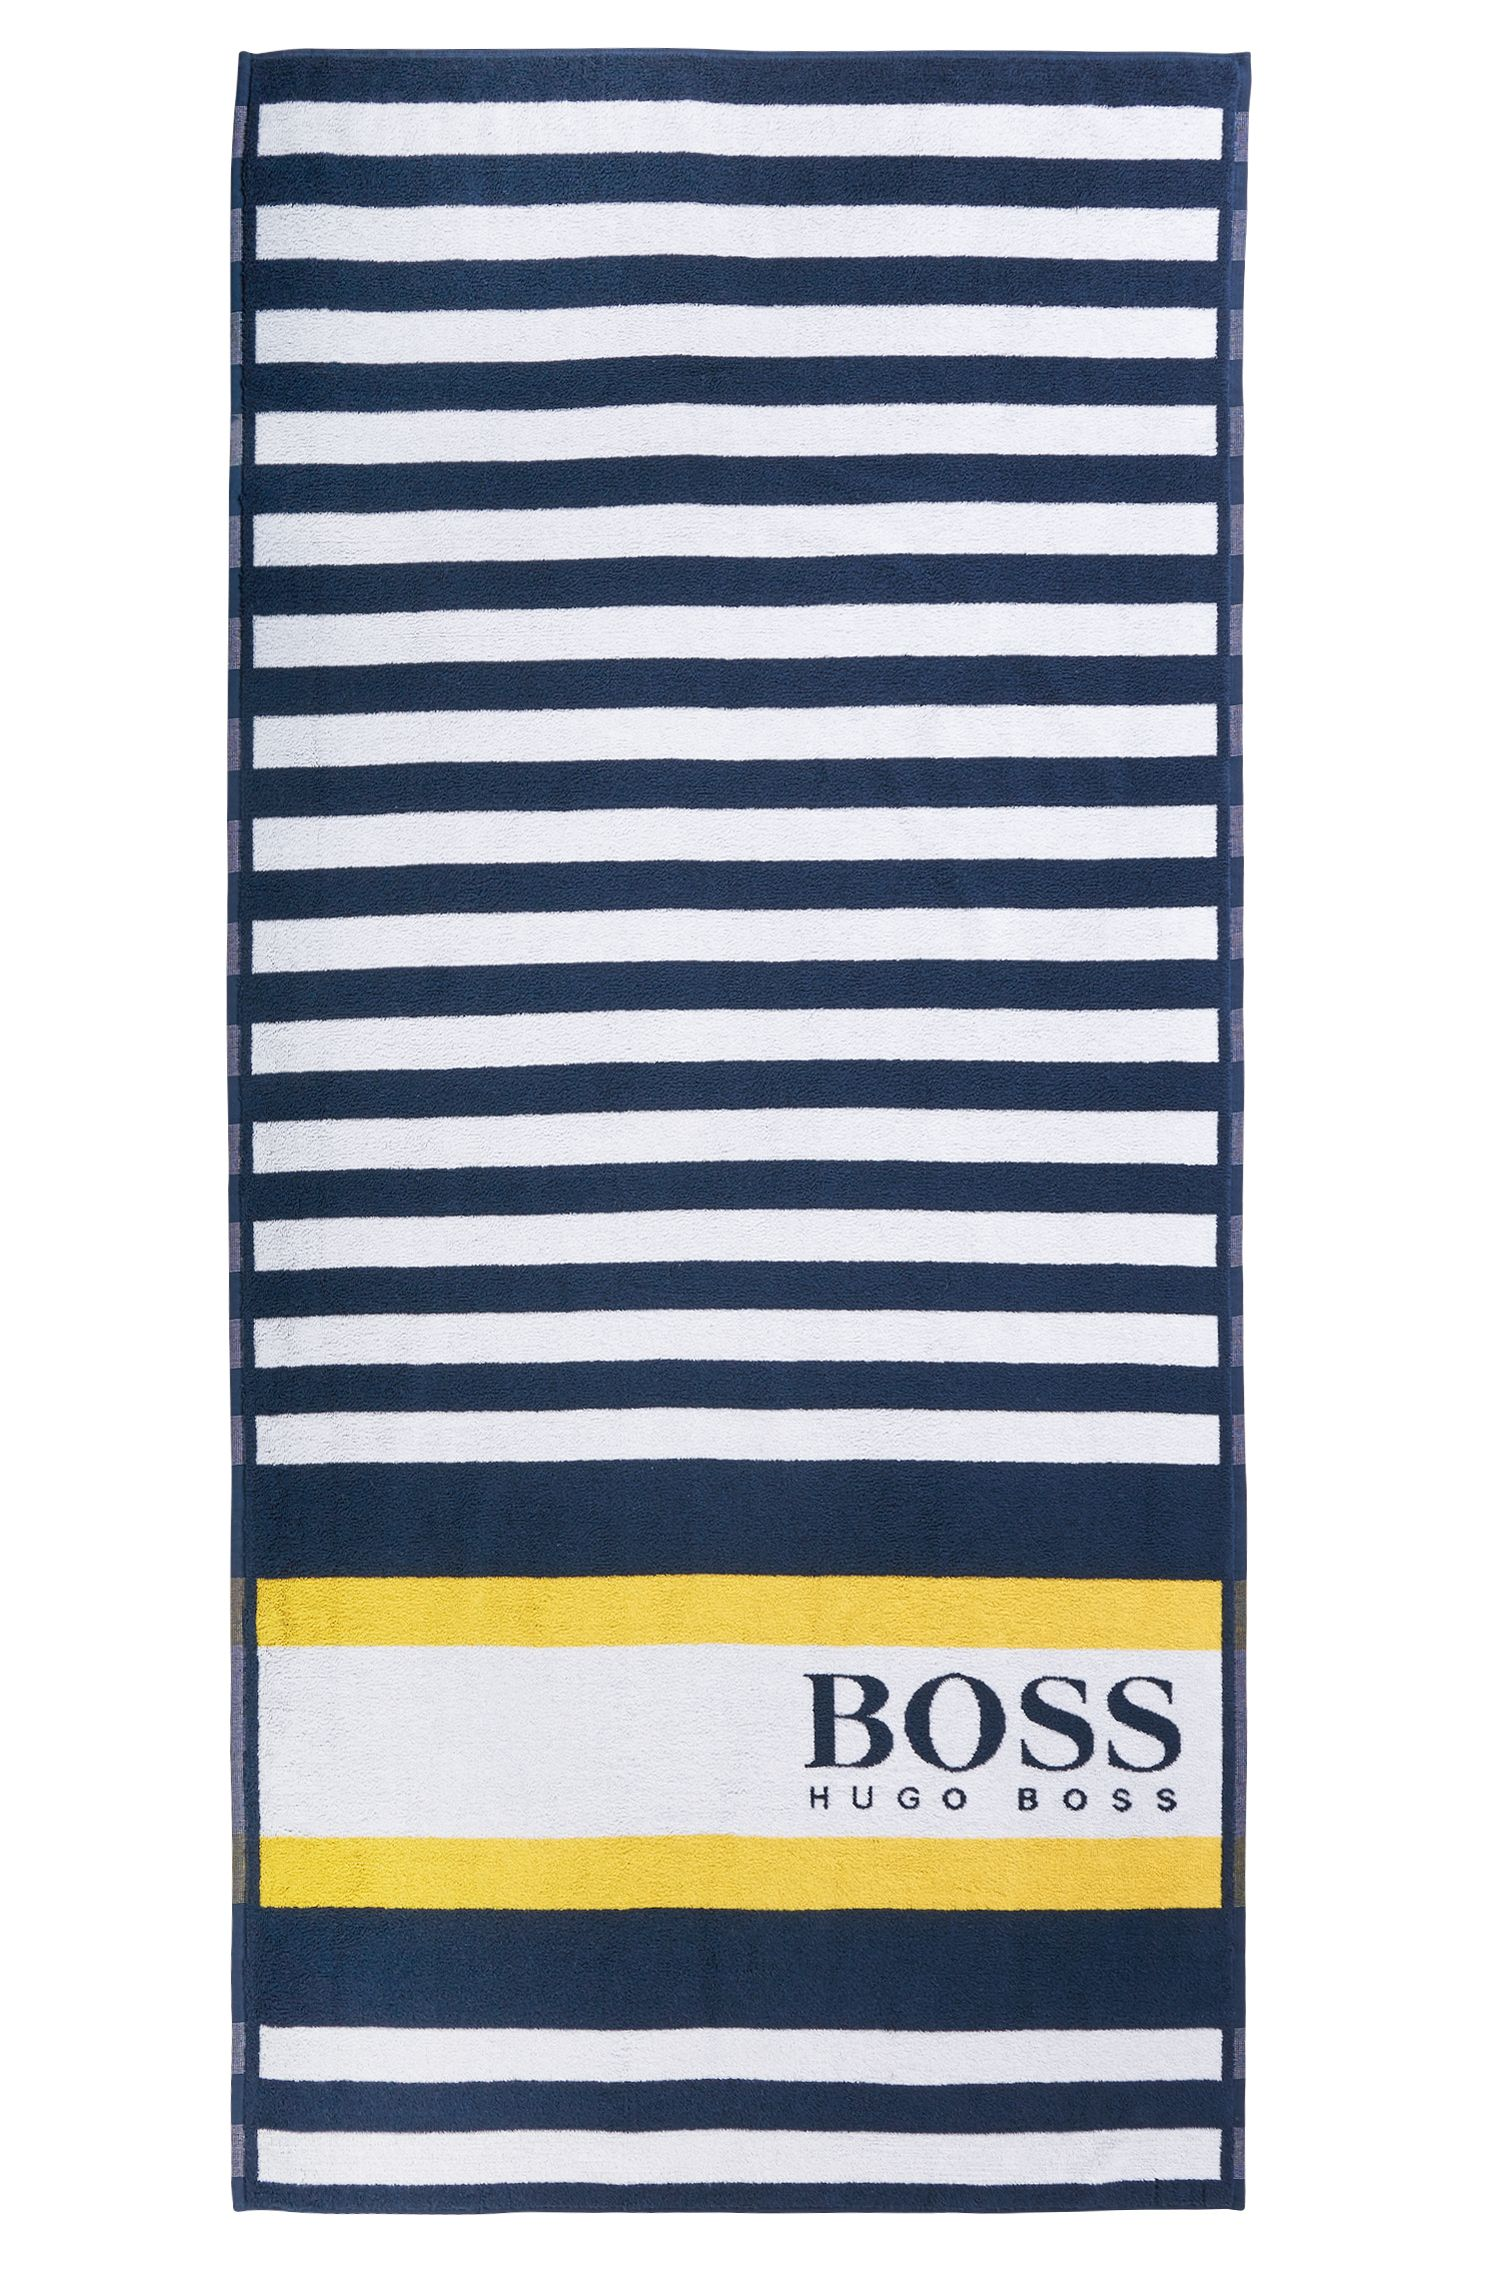 Striped Cotton Terrycloth Beach Towel | Beach Towel